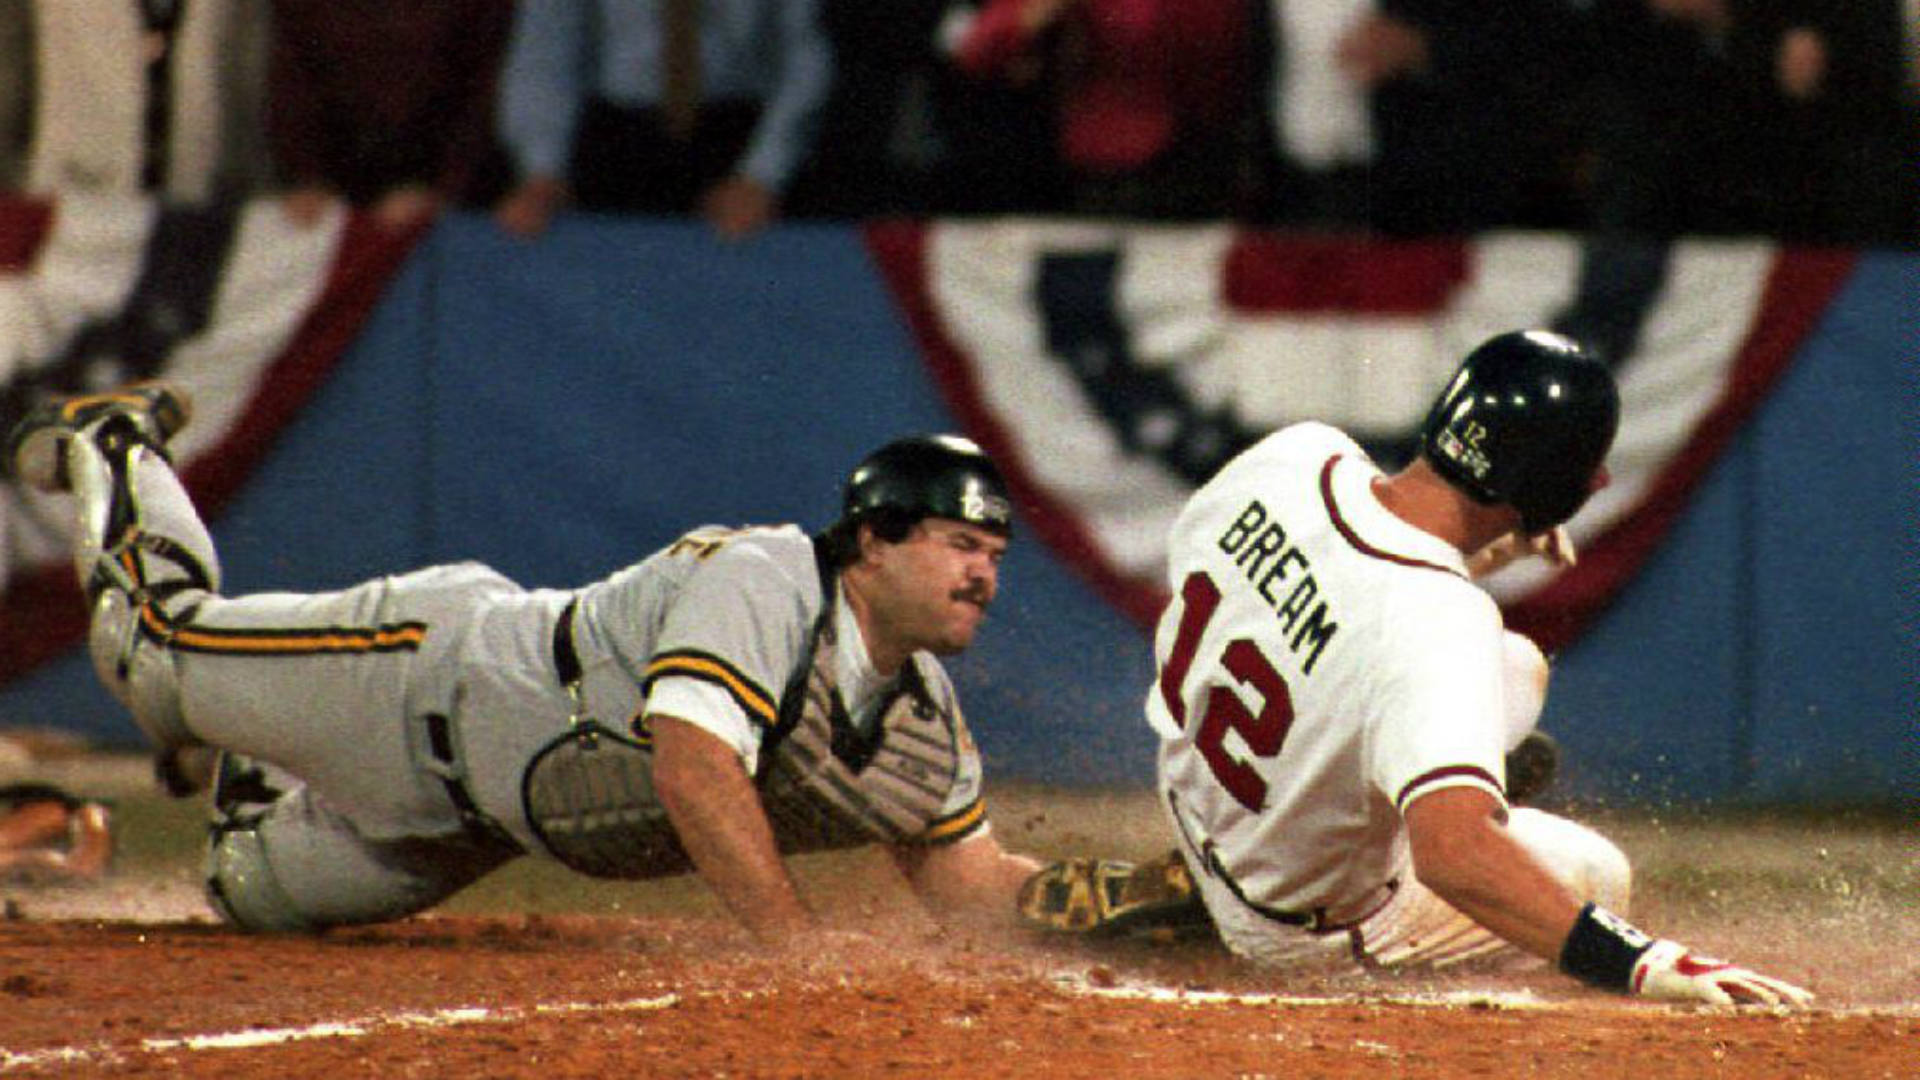 'I ran as hard as I could': A story you've never heard about Game 7 of the 1992 NLCS